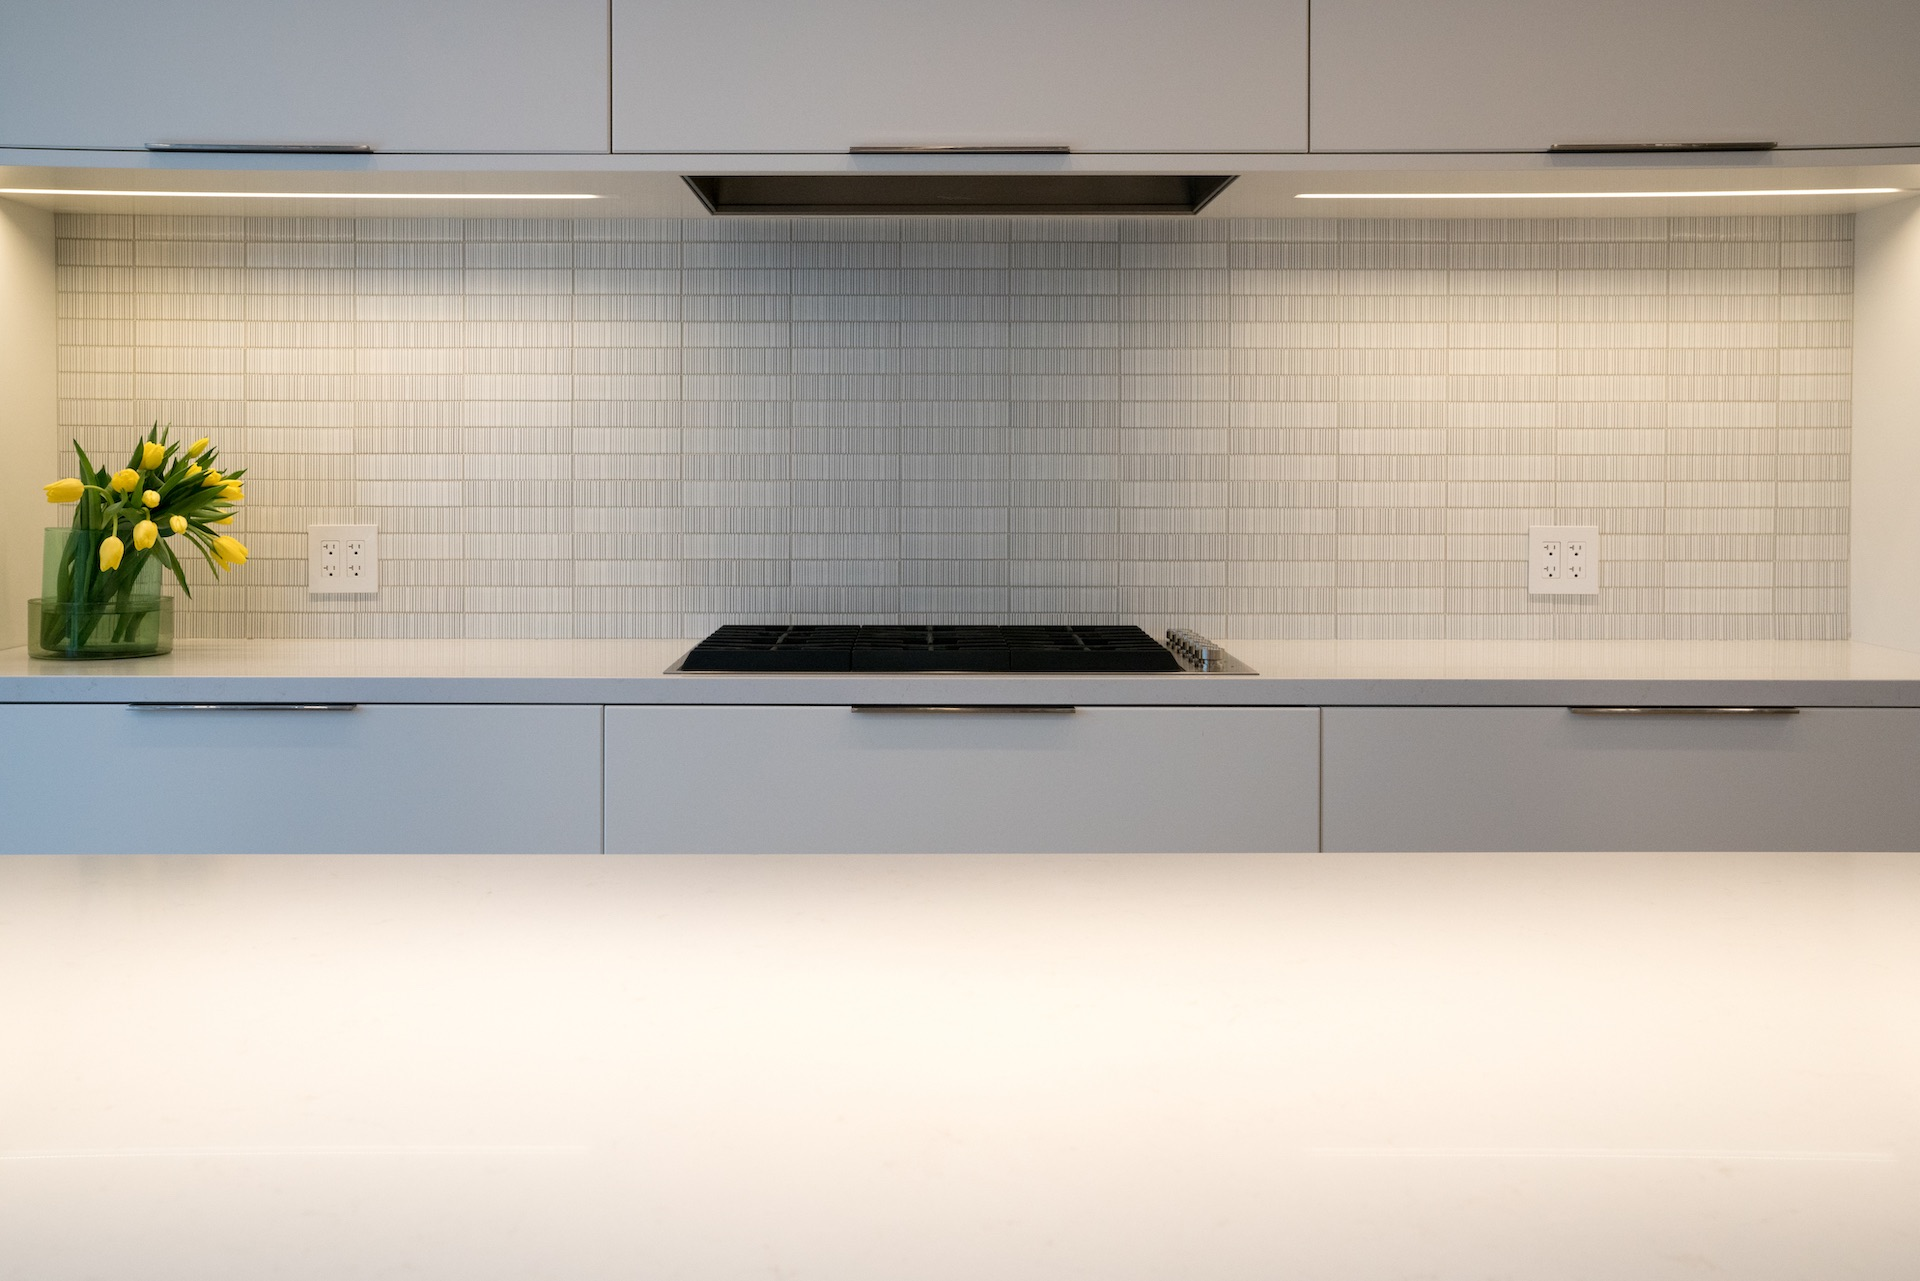 white counter with black grill stove